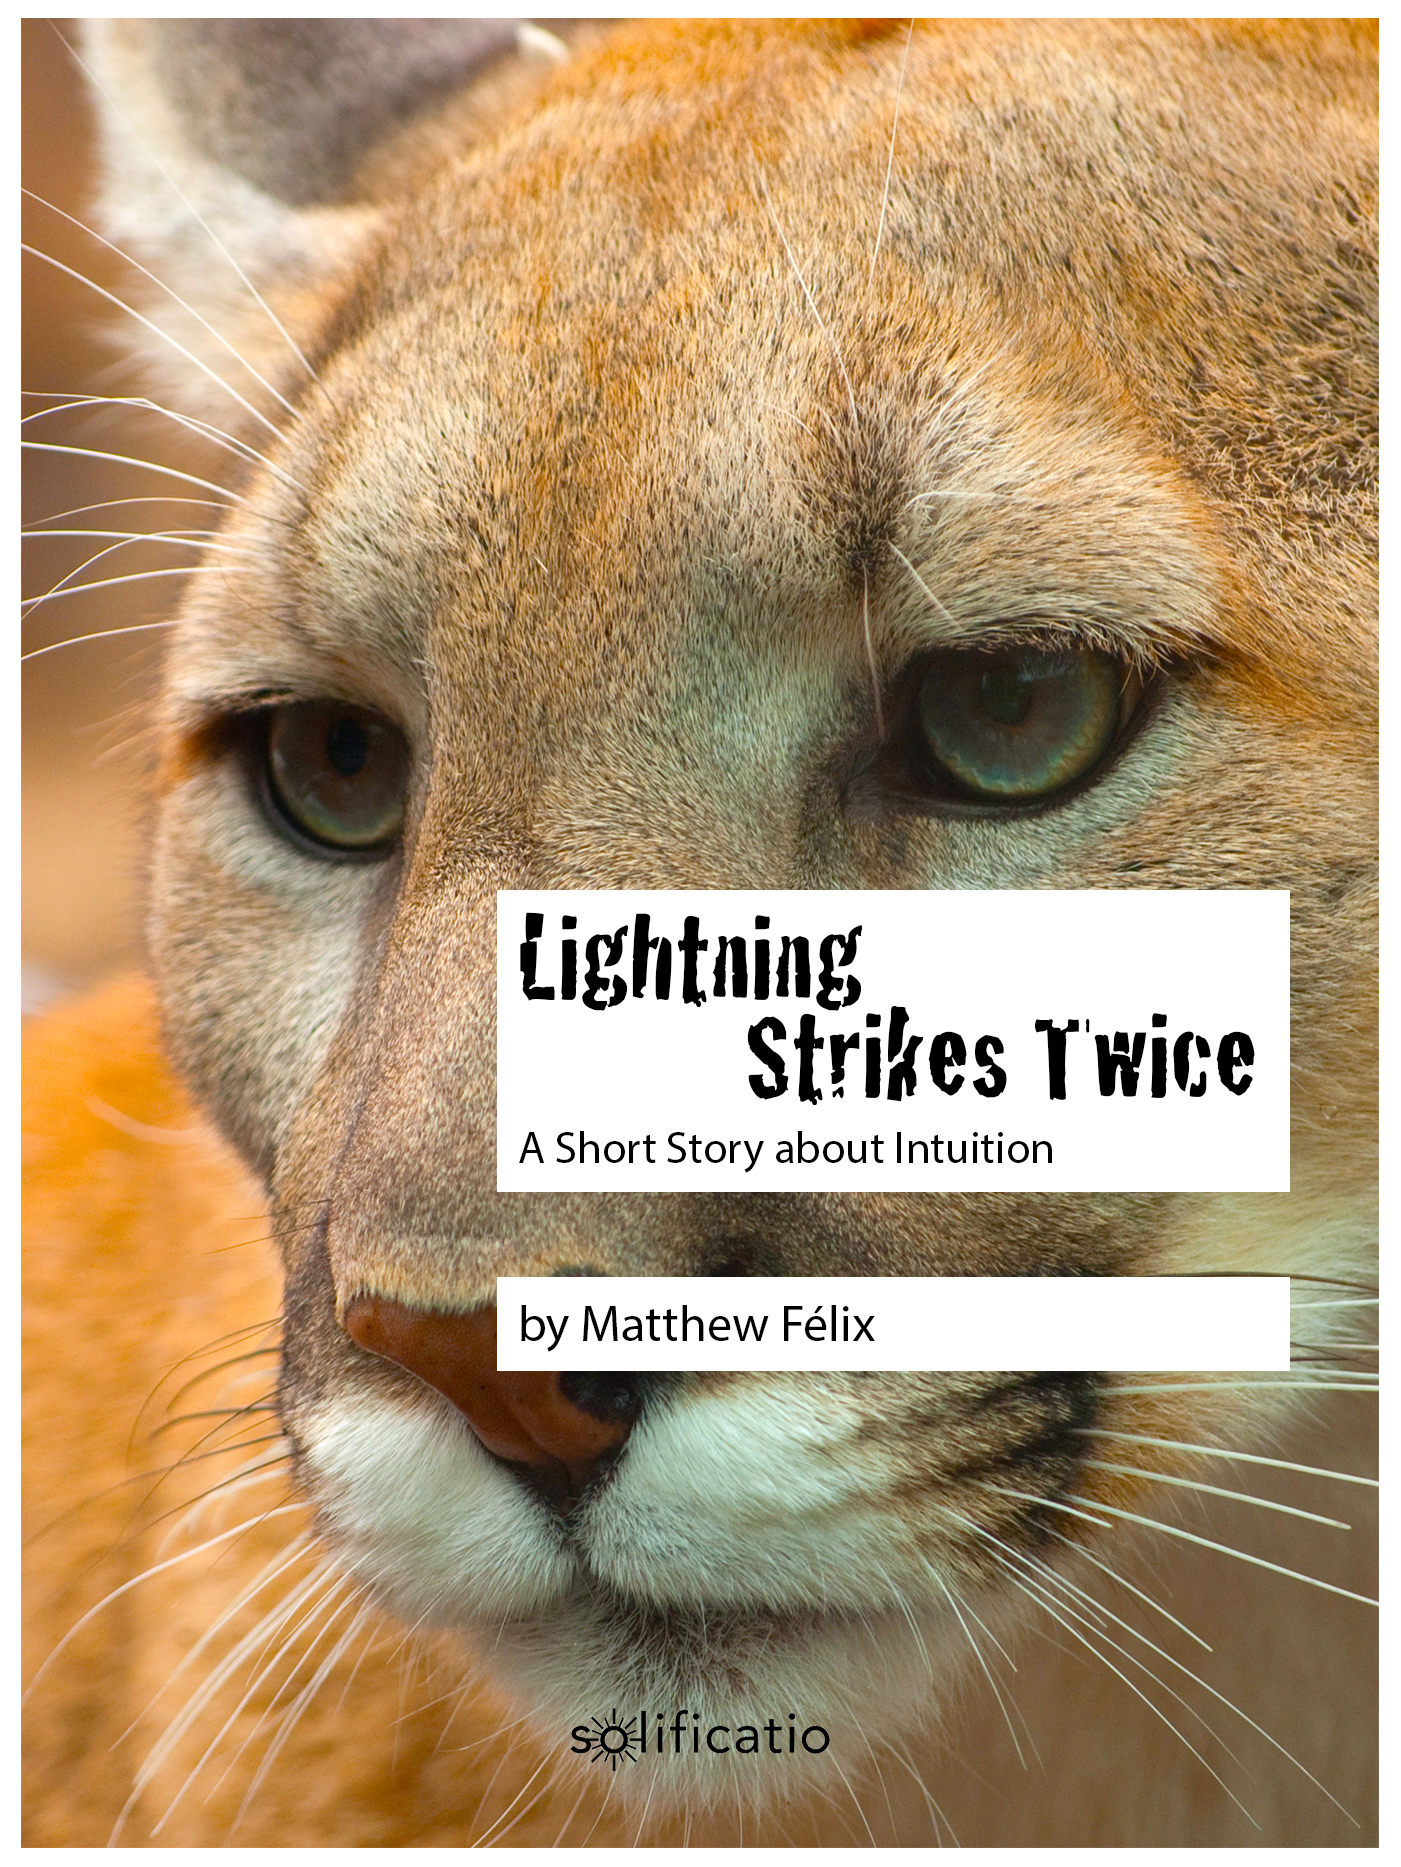 "He thought he was just taking a hike on the Northern California coast. Instead he found himself face-to-face with one of his biggest fears, thanks to an intimate experience with his inner voice. ""Lightning Strikes Twice"" is the free true story by author Matthew Felix."